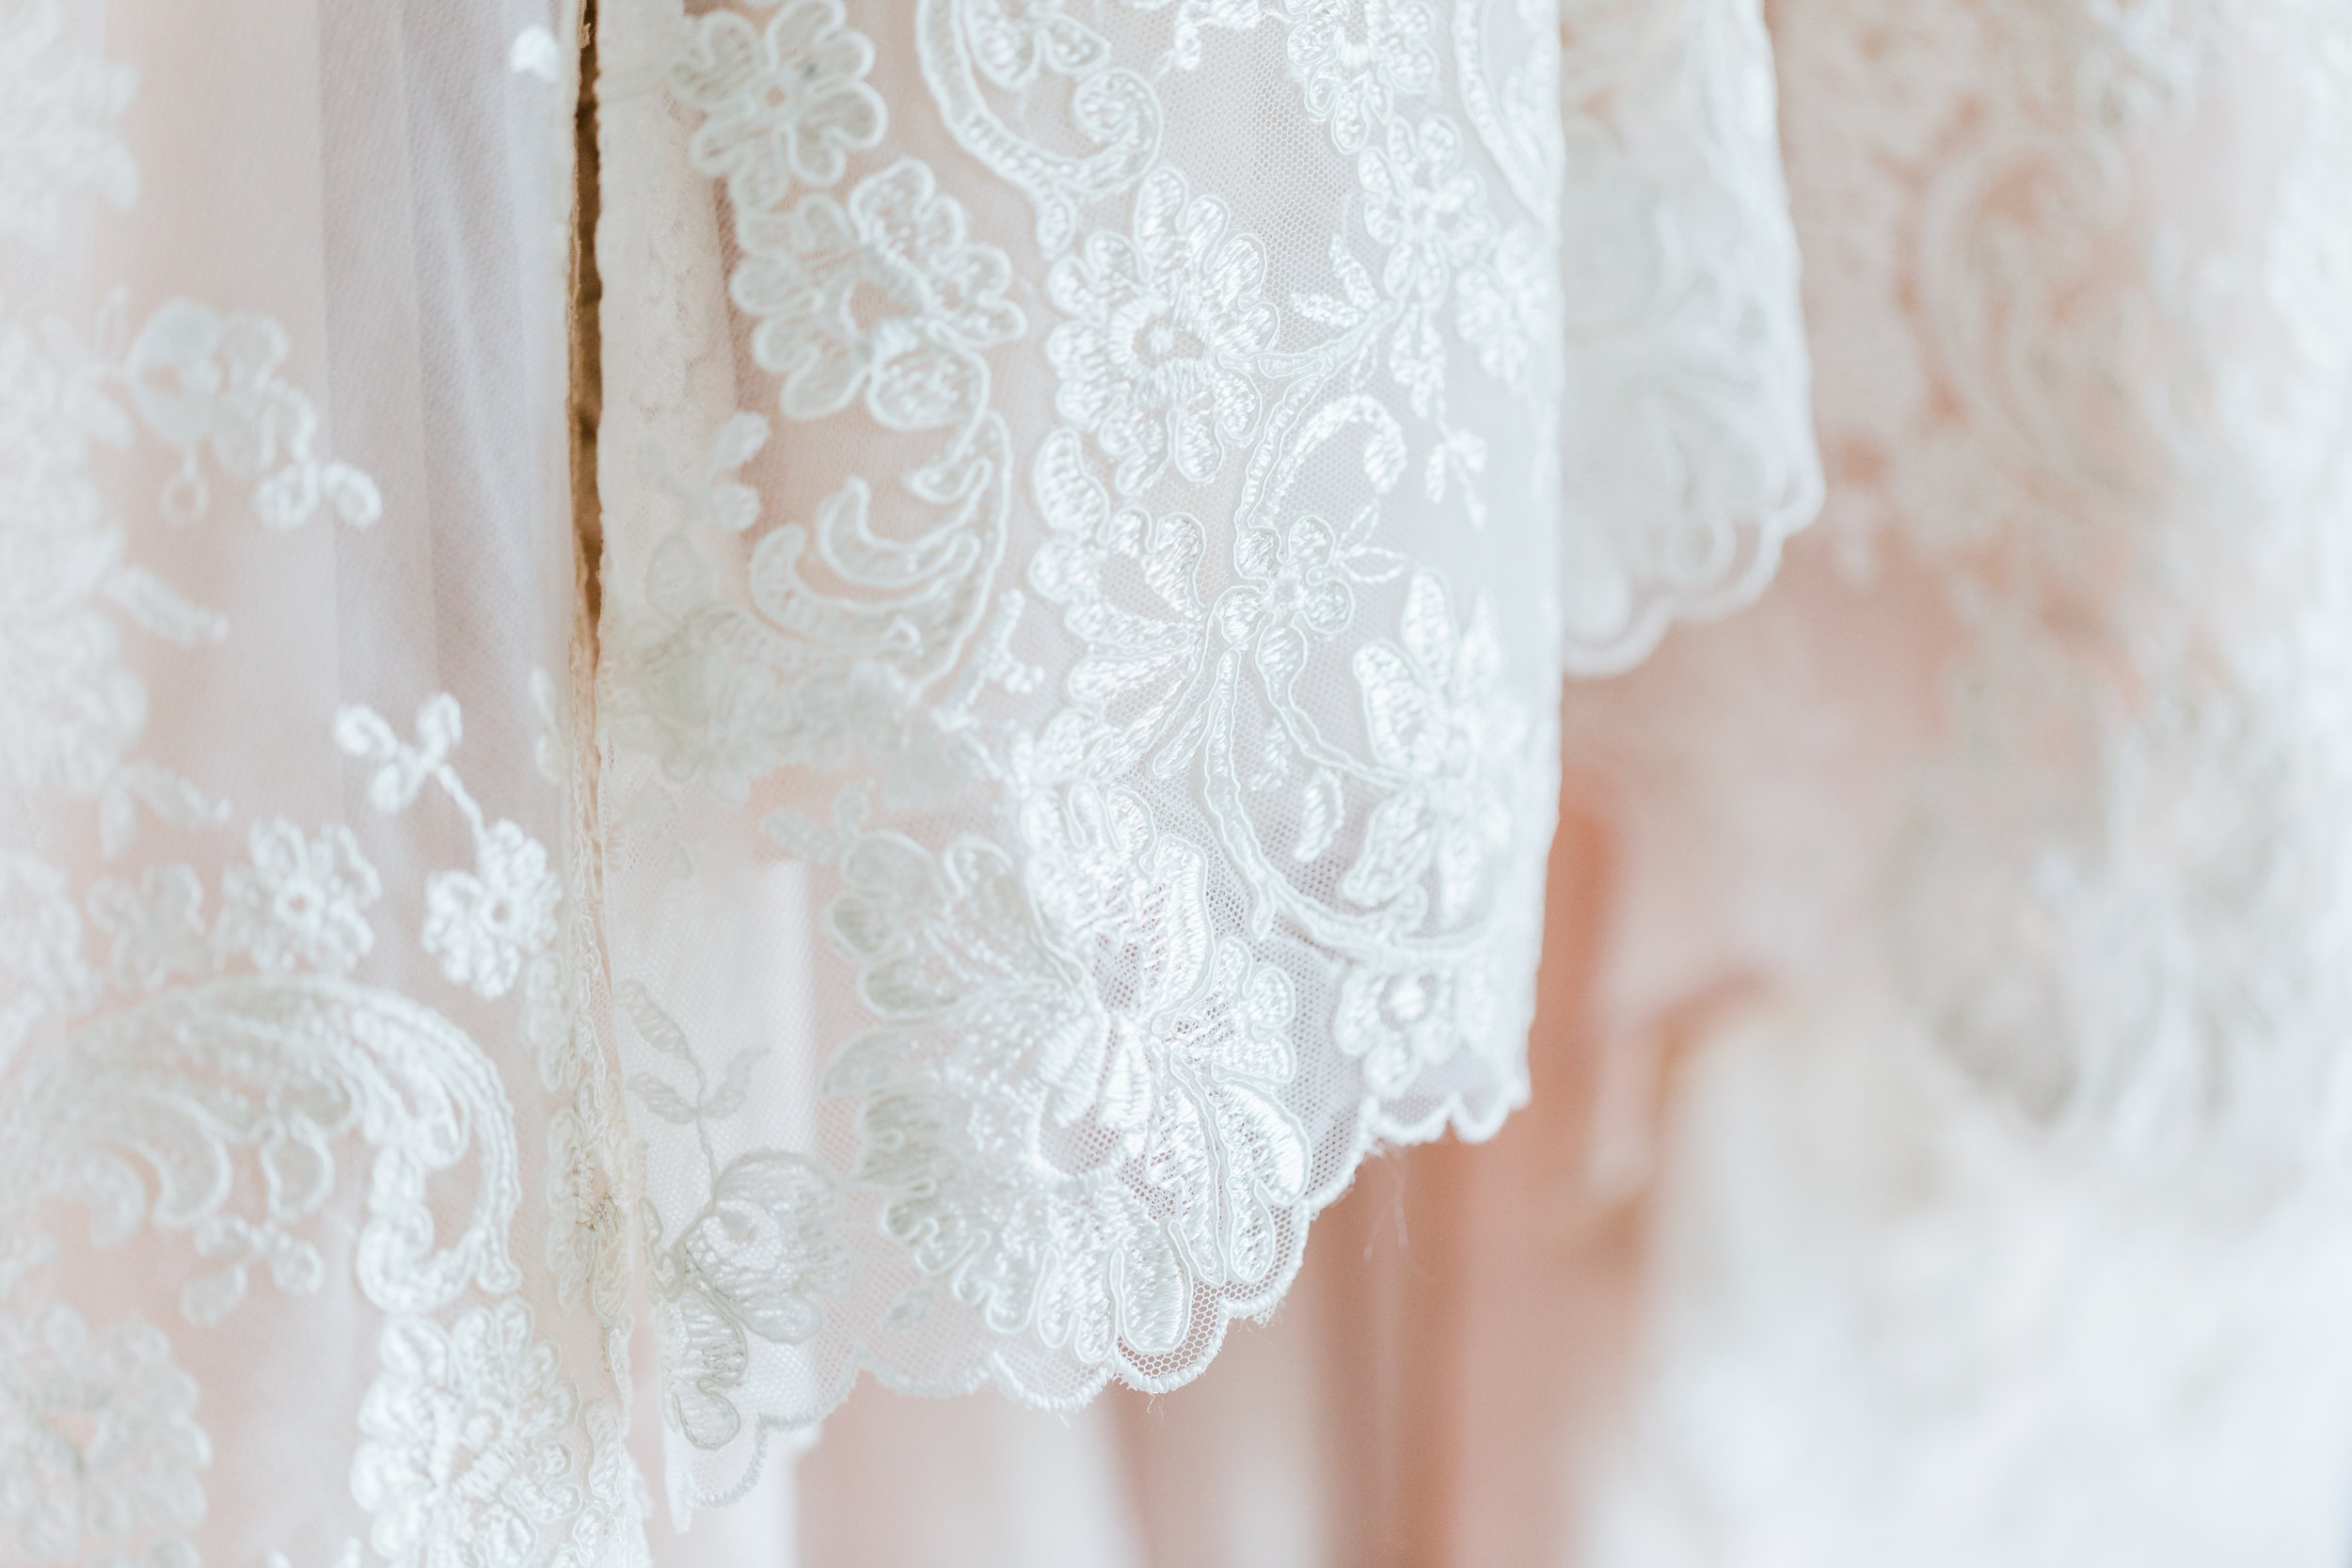 wedding gown lace detail